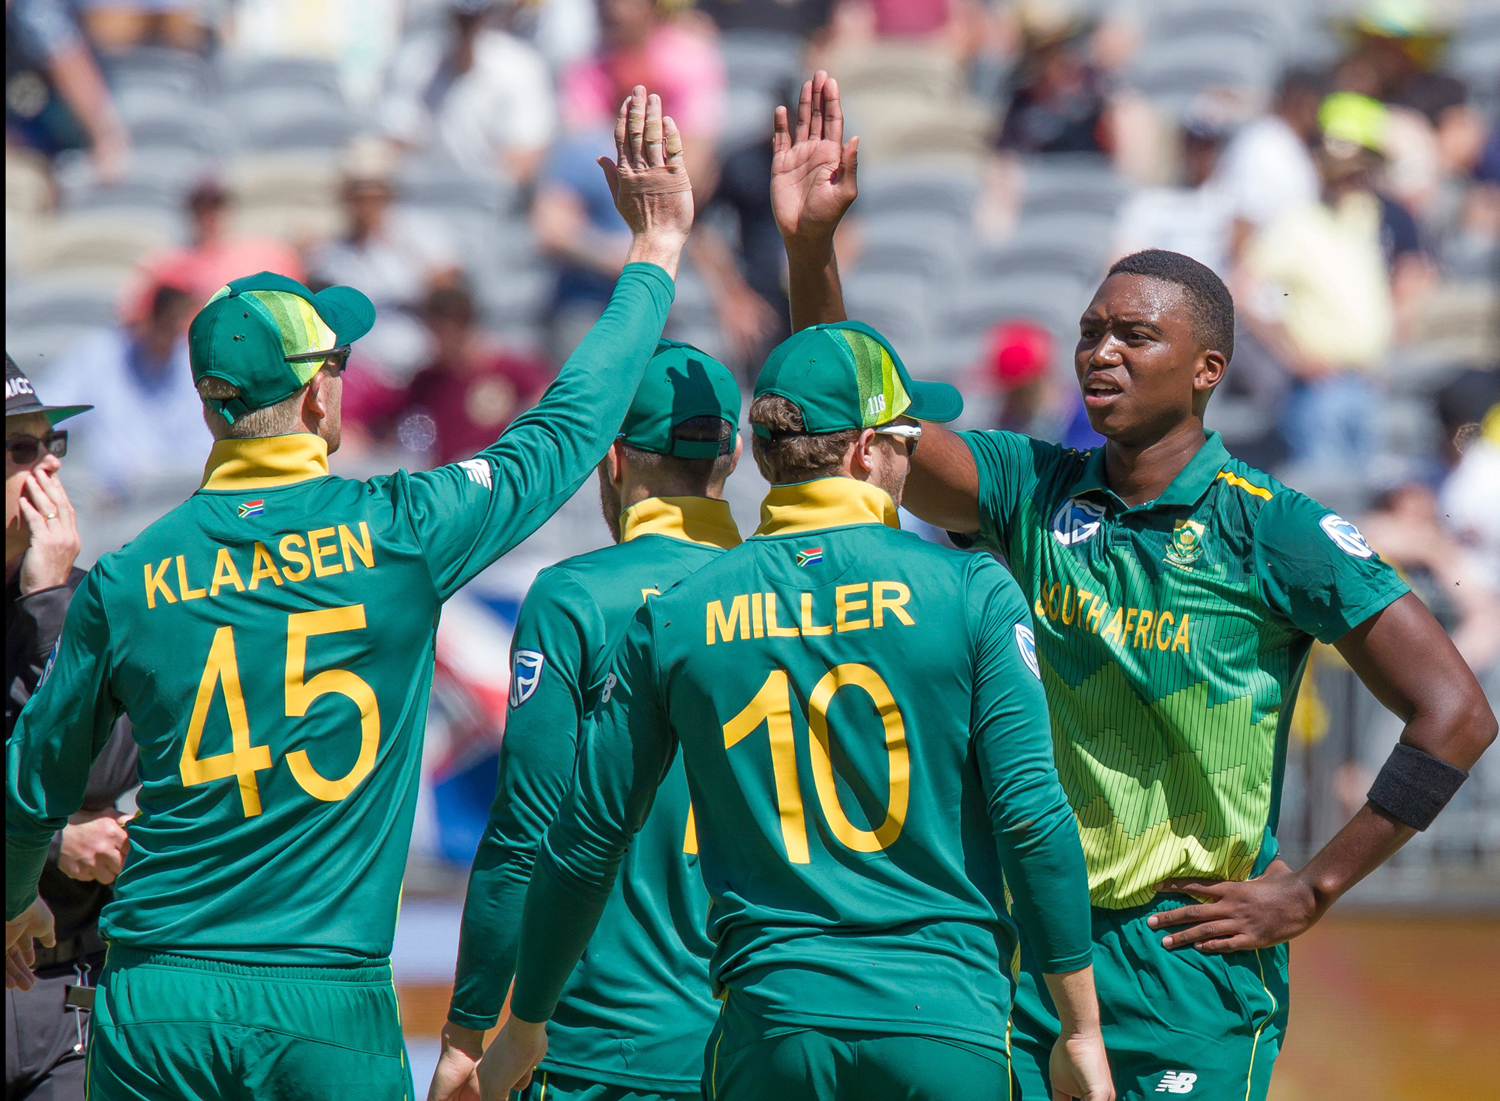 South Africa's Lungi Ngidi (R) celabrates with teammates after taking a wicket during the first one-day international (ODI) cricket match between South Africa and Australia at the Optus Stadium in Perth on November 4, 2018. (Photo by TONY ASHBY / AFP) / -